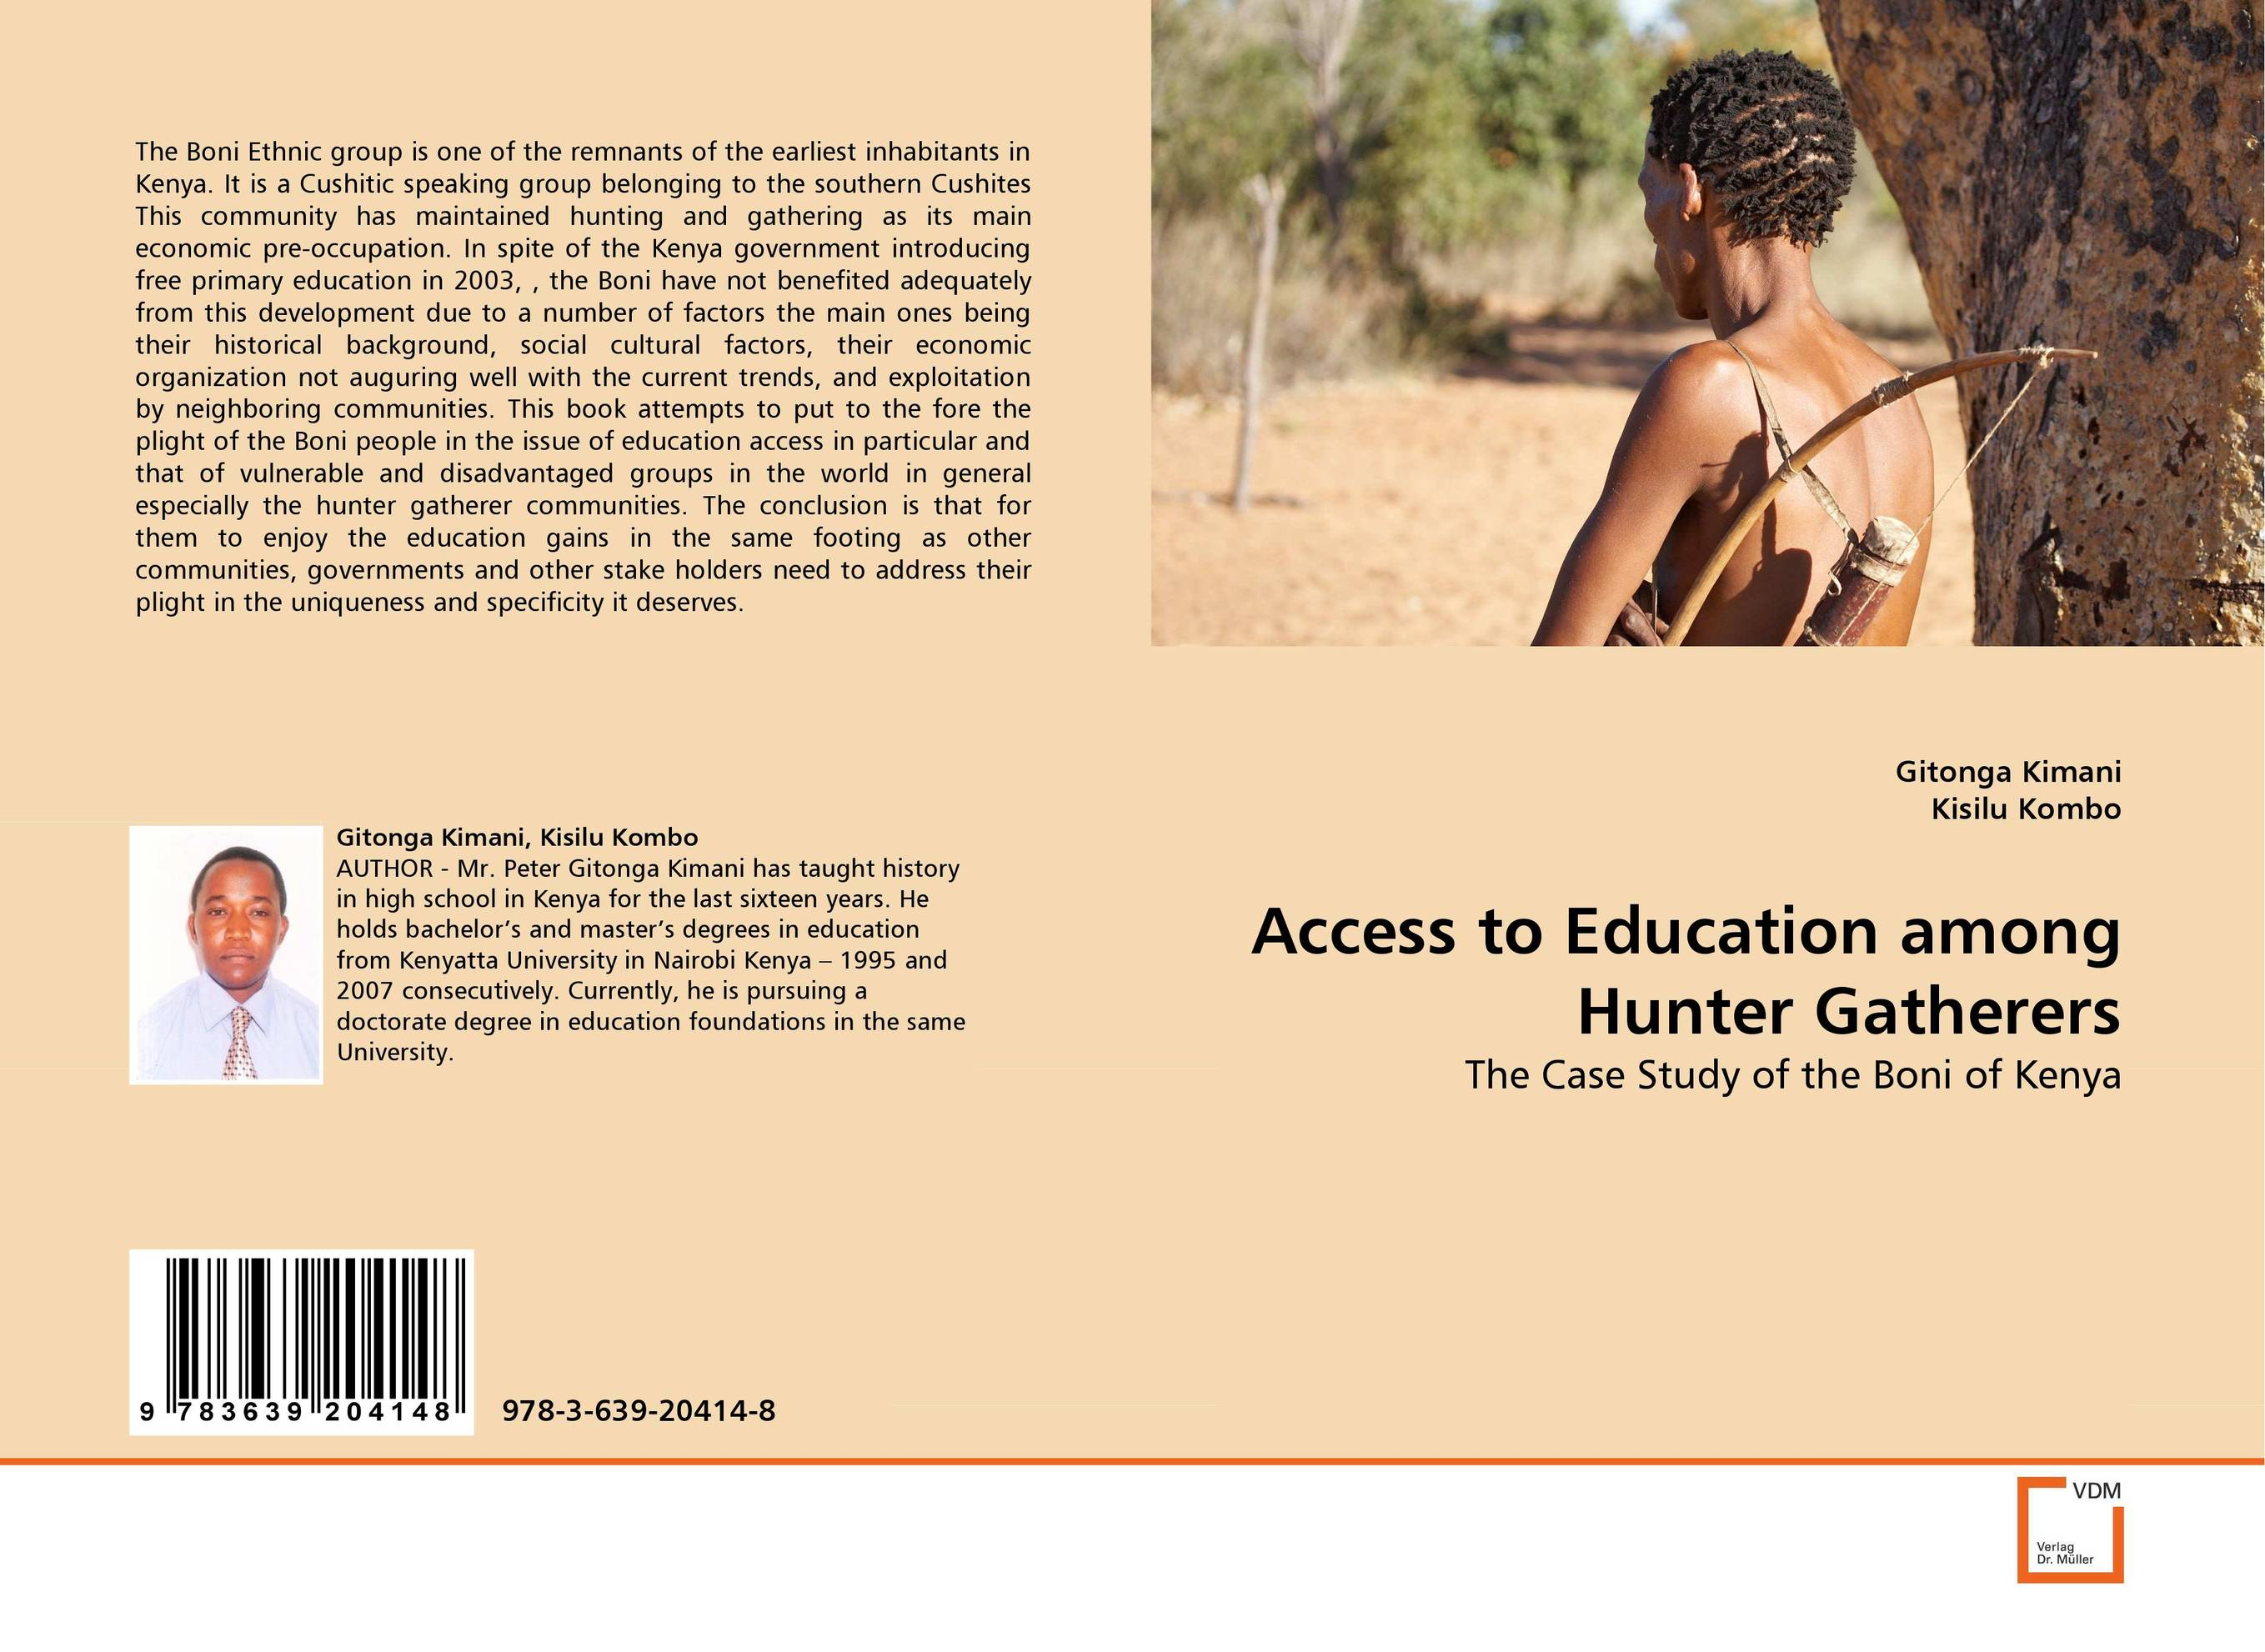 Access to Education among Hunter Gatherers presidential nominee will address a gathering